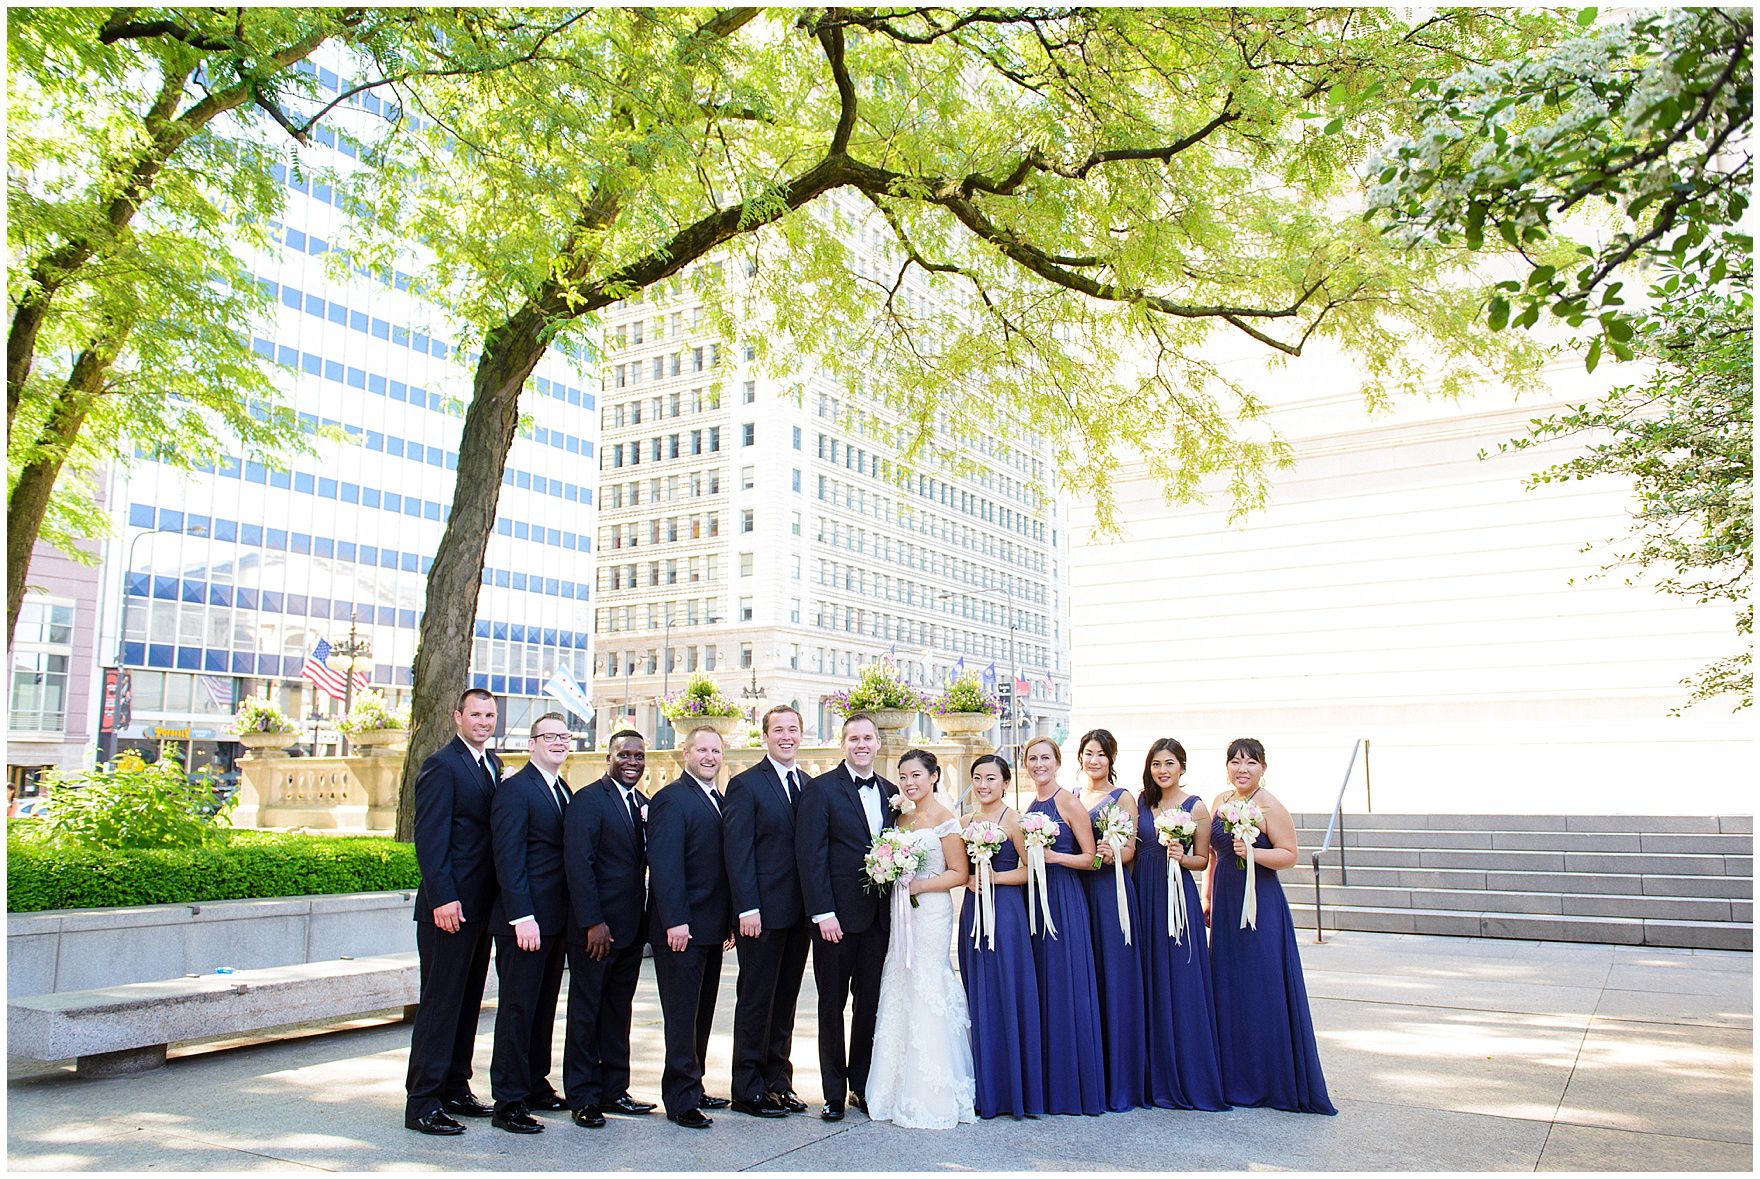 A bridal party poses in the South Gardens of the Art Institute of Chicago before a University Club of Chicago wedding.